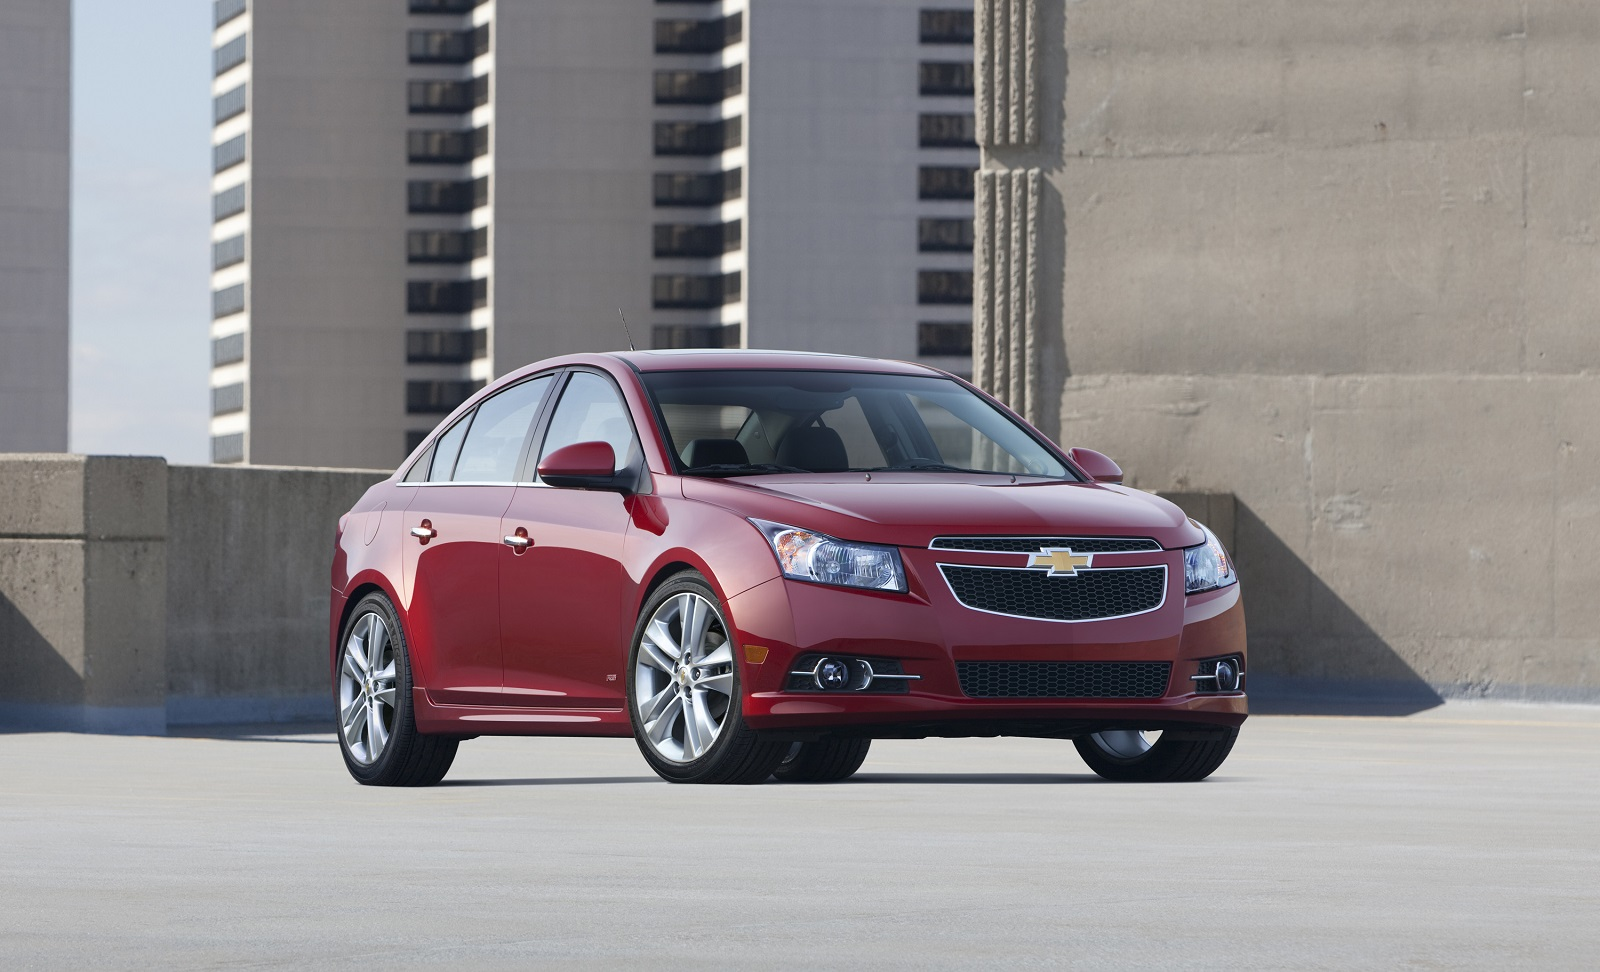 Bmw Of Fresno >> 2014 Chevrolet Cruze (Chevy) Review, Ratings, Specs, Prices, and Photos - The Car Connection